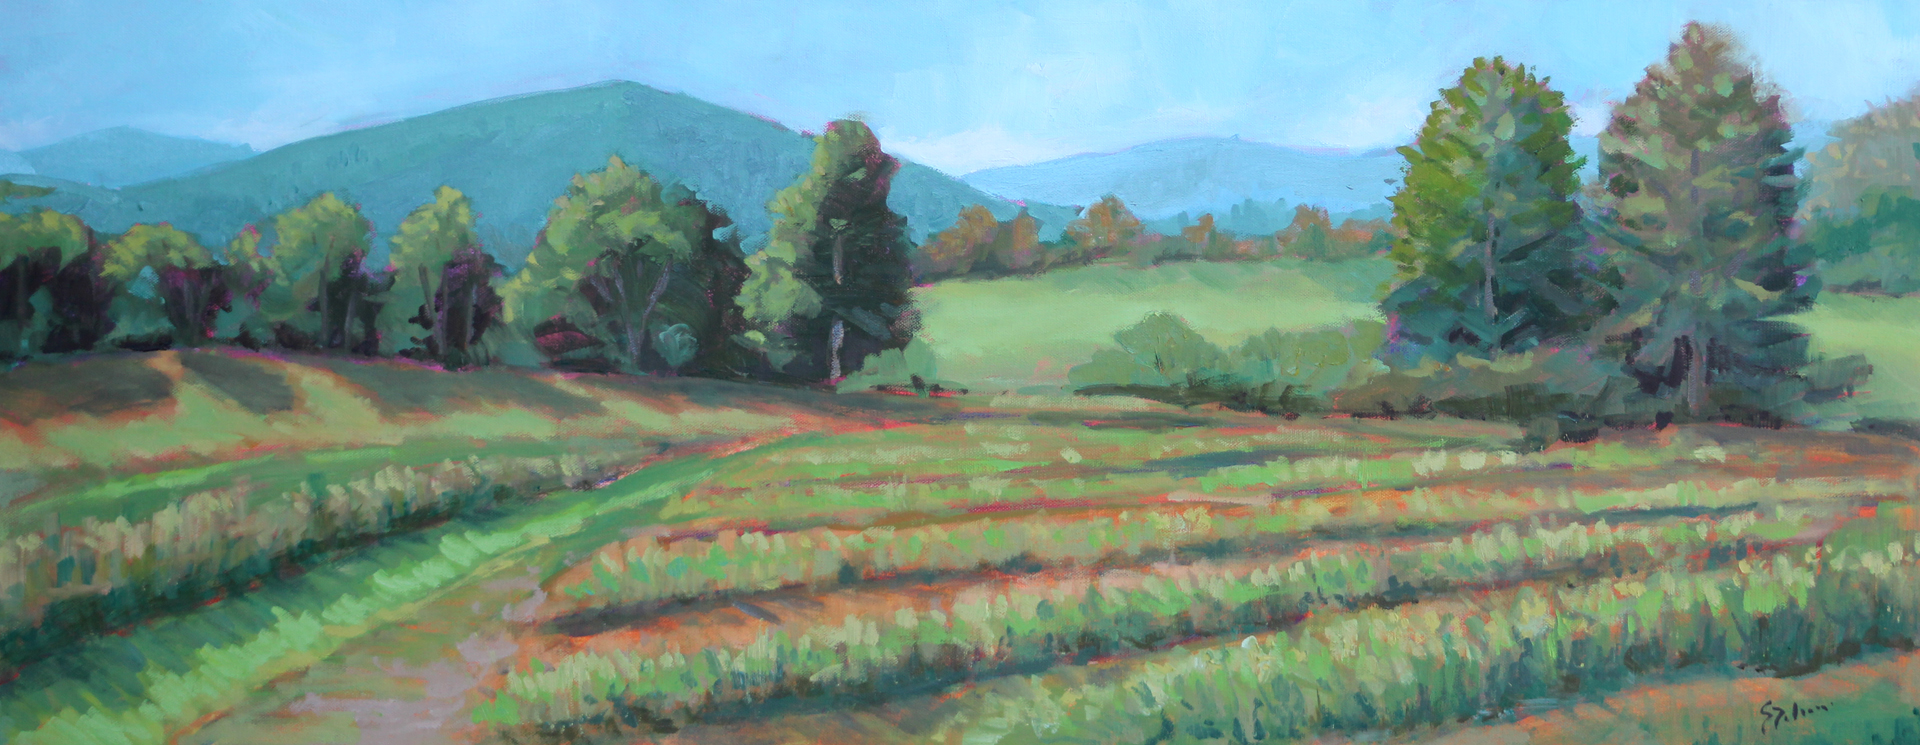 Dolamore-Mountain Valley  Farm-oil-16x40